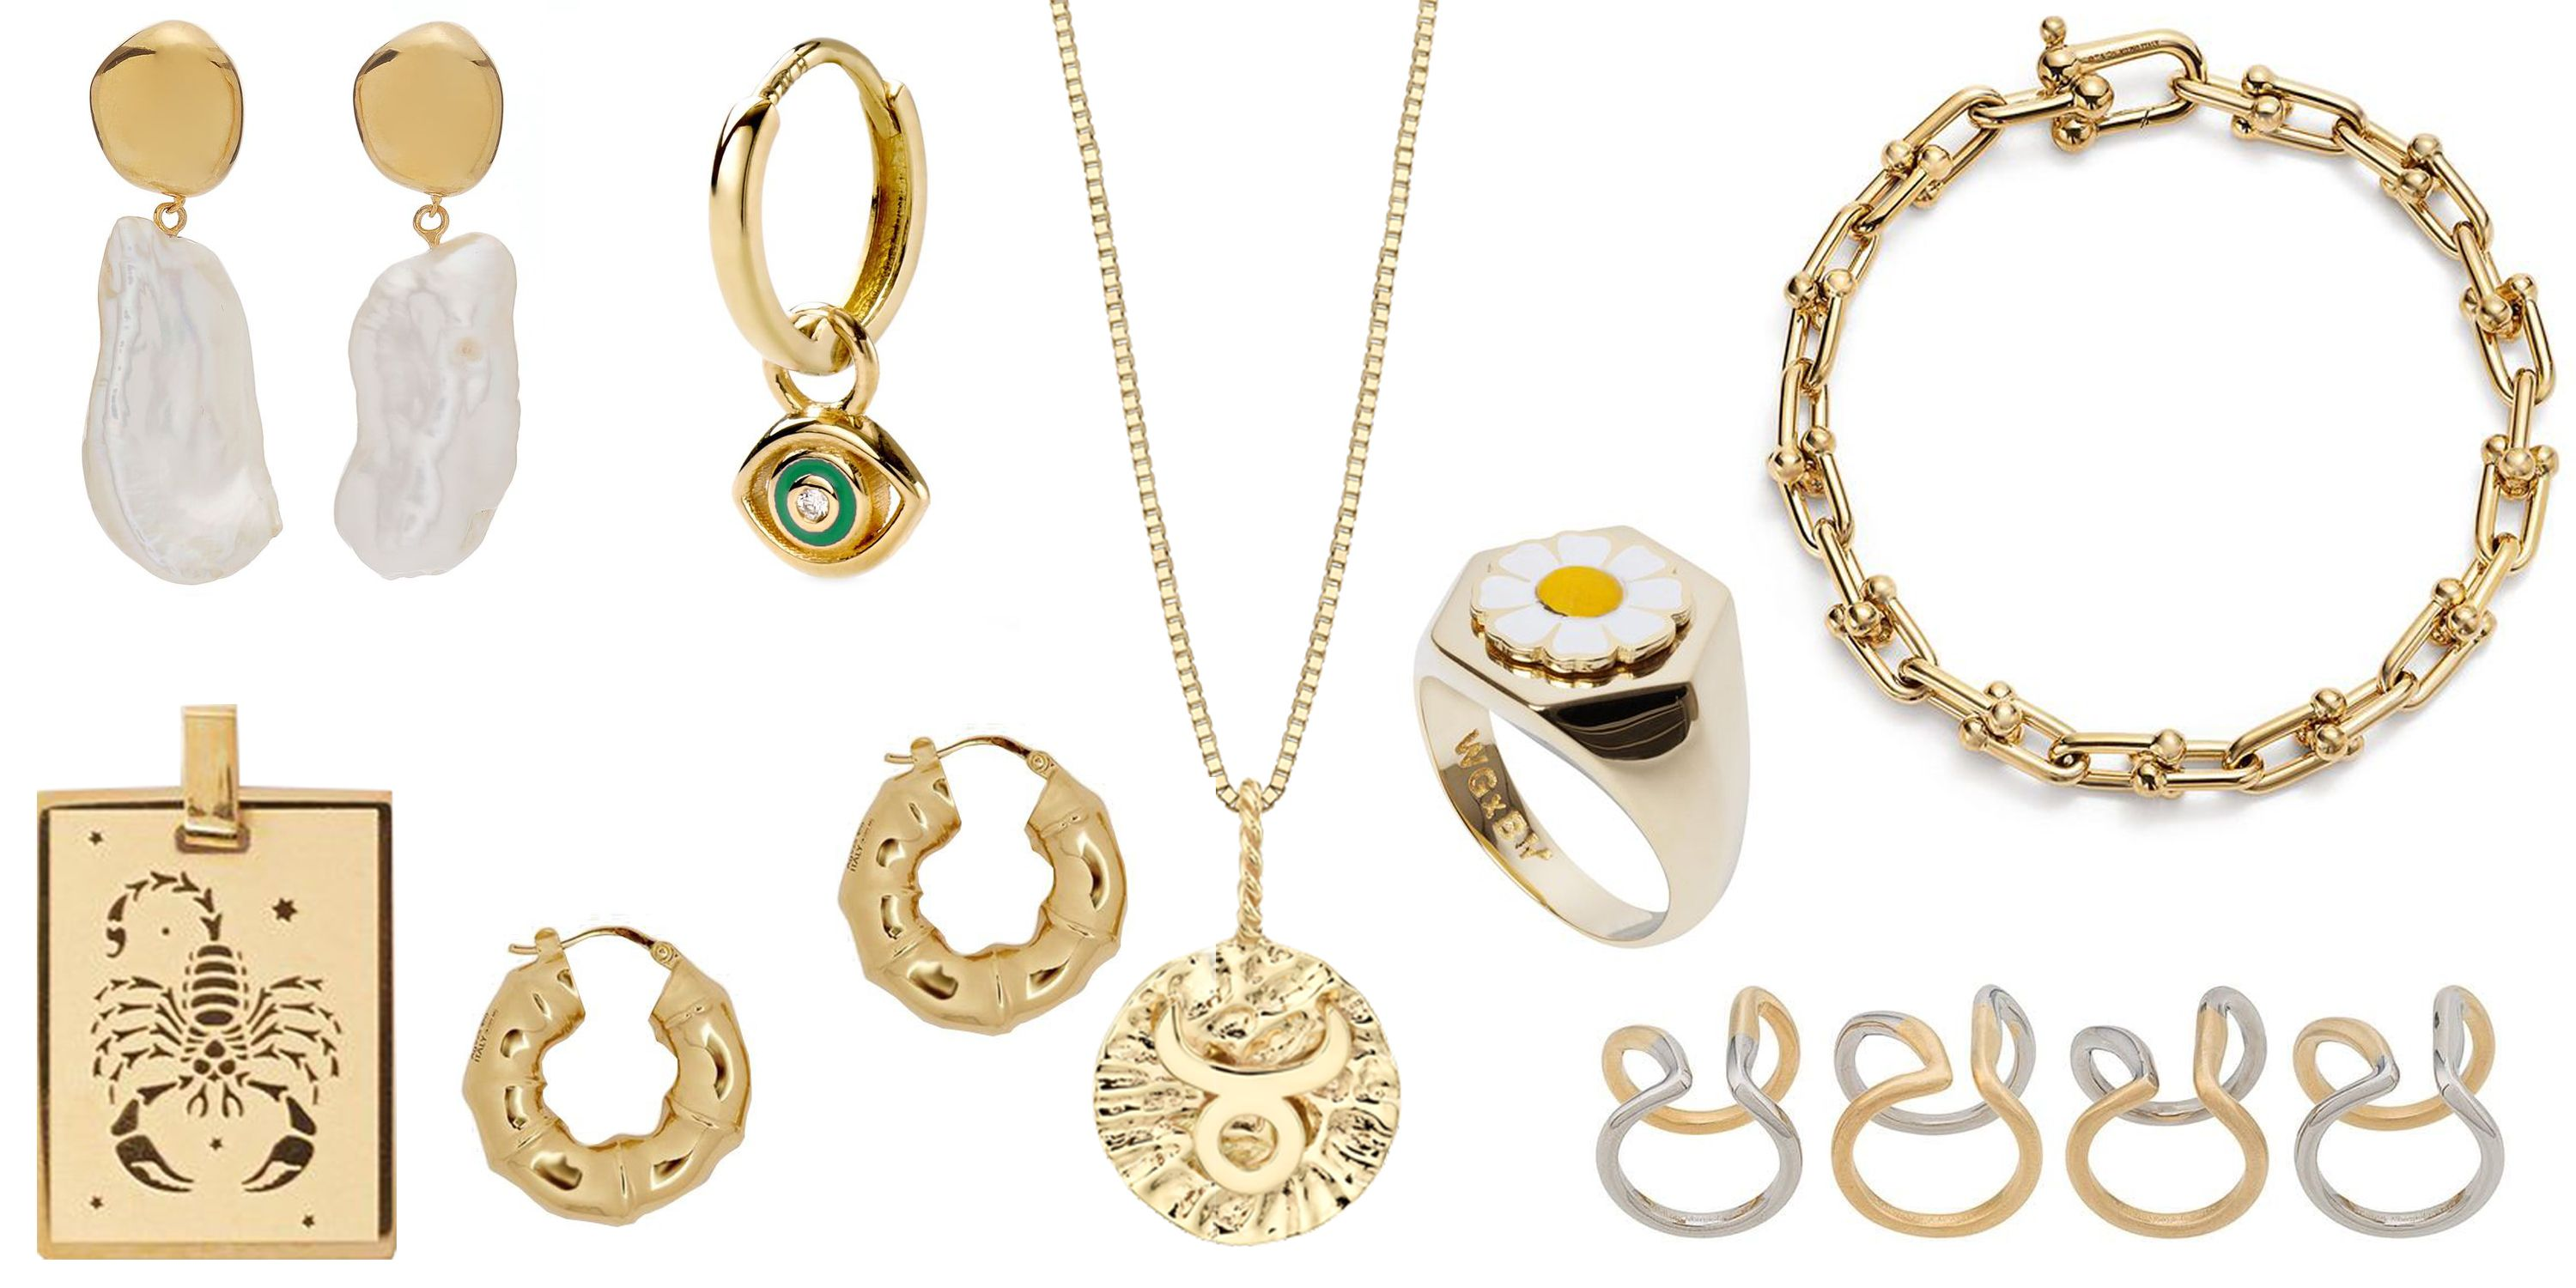 The Jewelry Trends That Will Be Everywhere in 2020 - Hoops to Buy